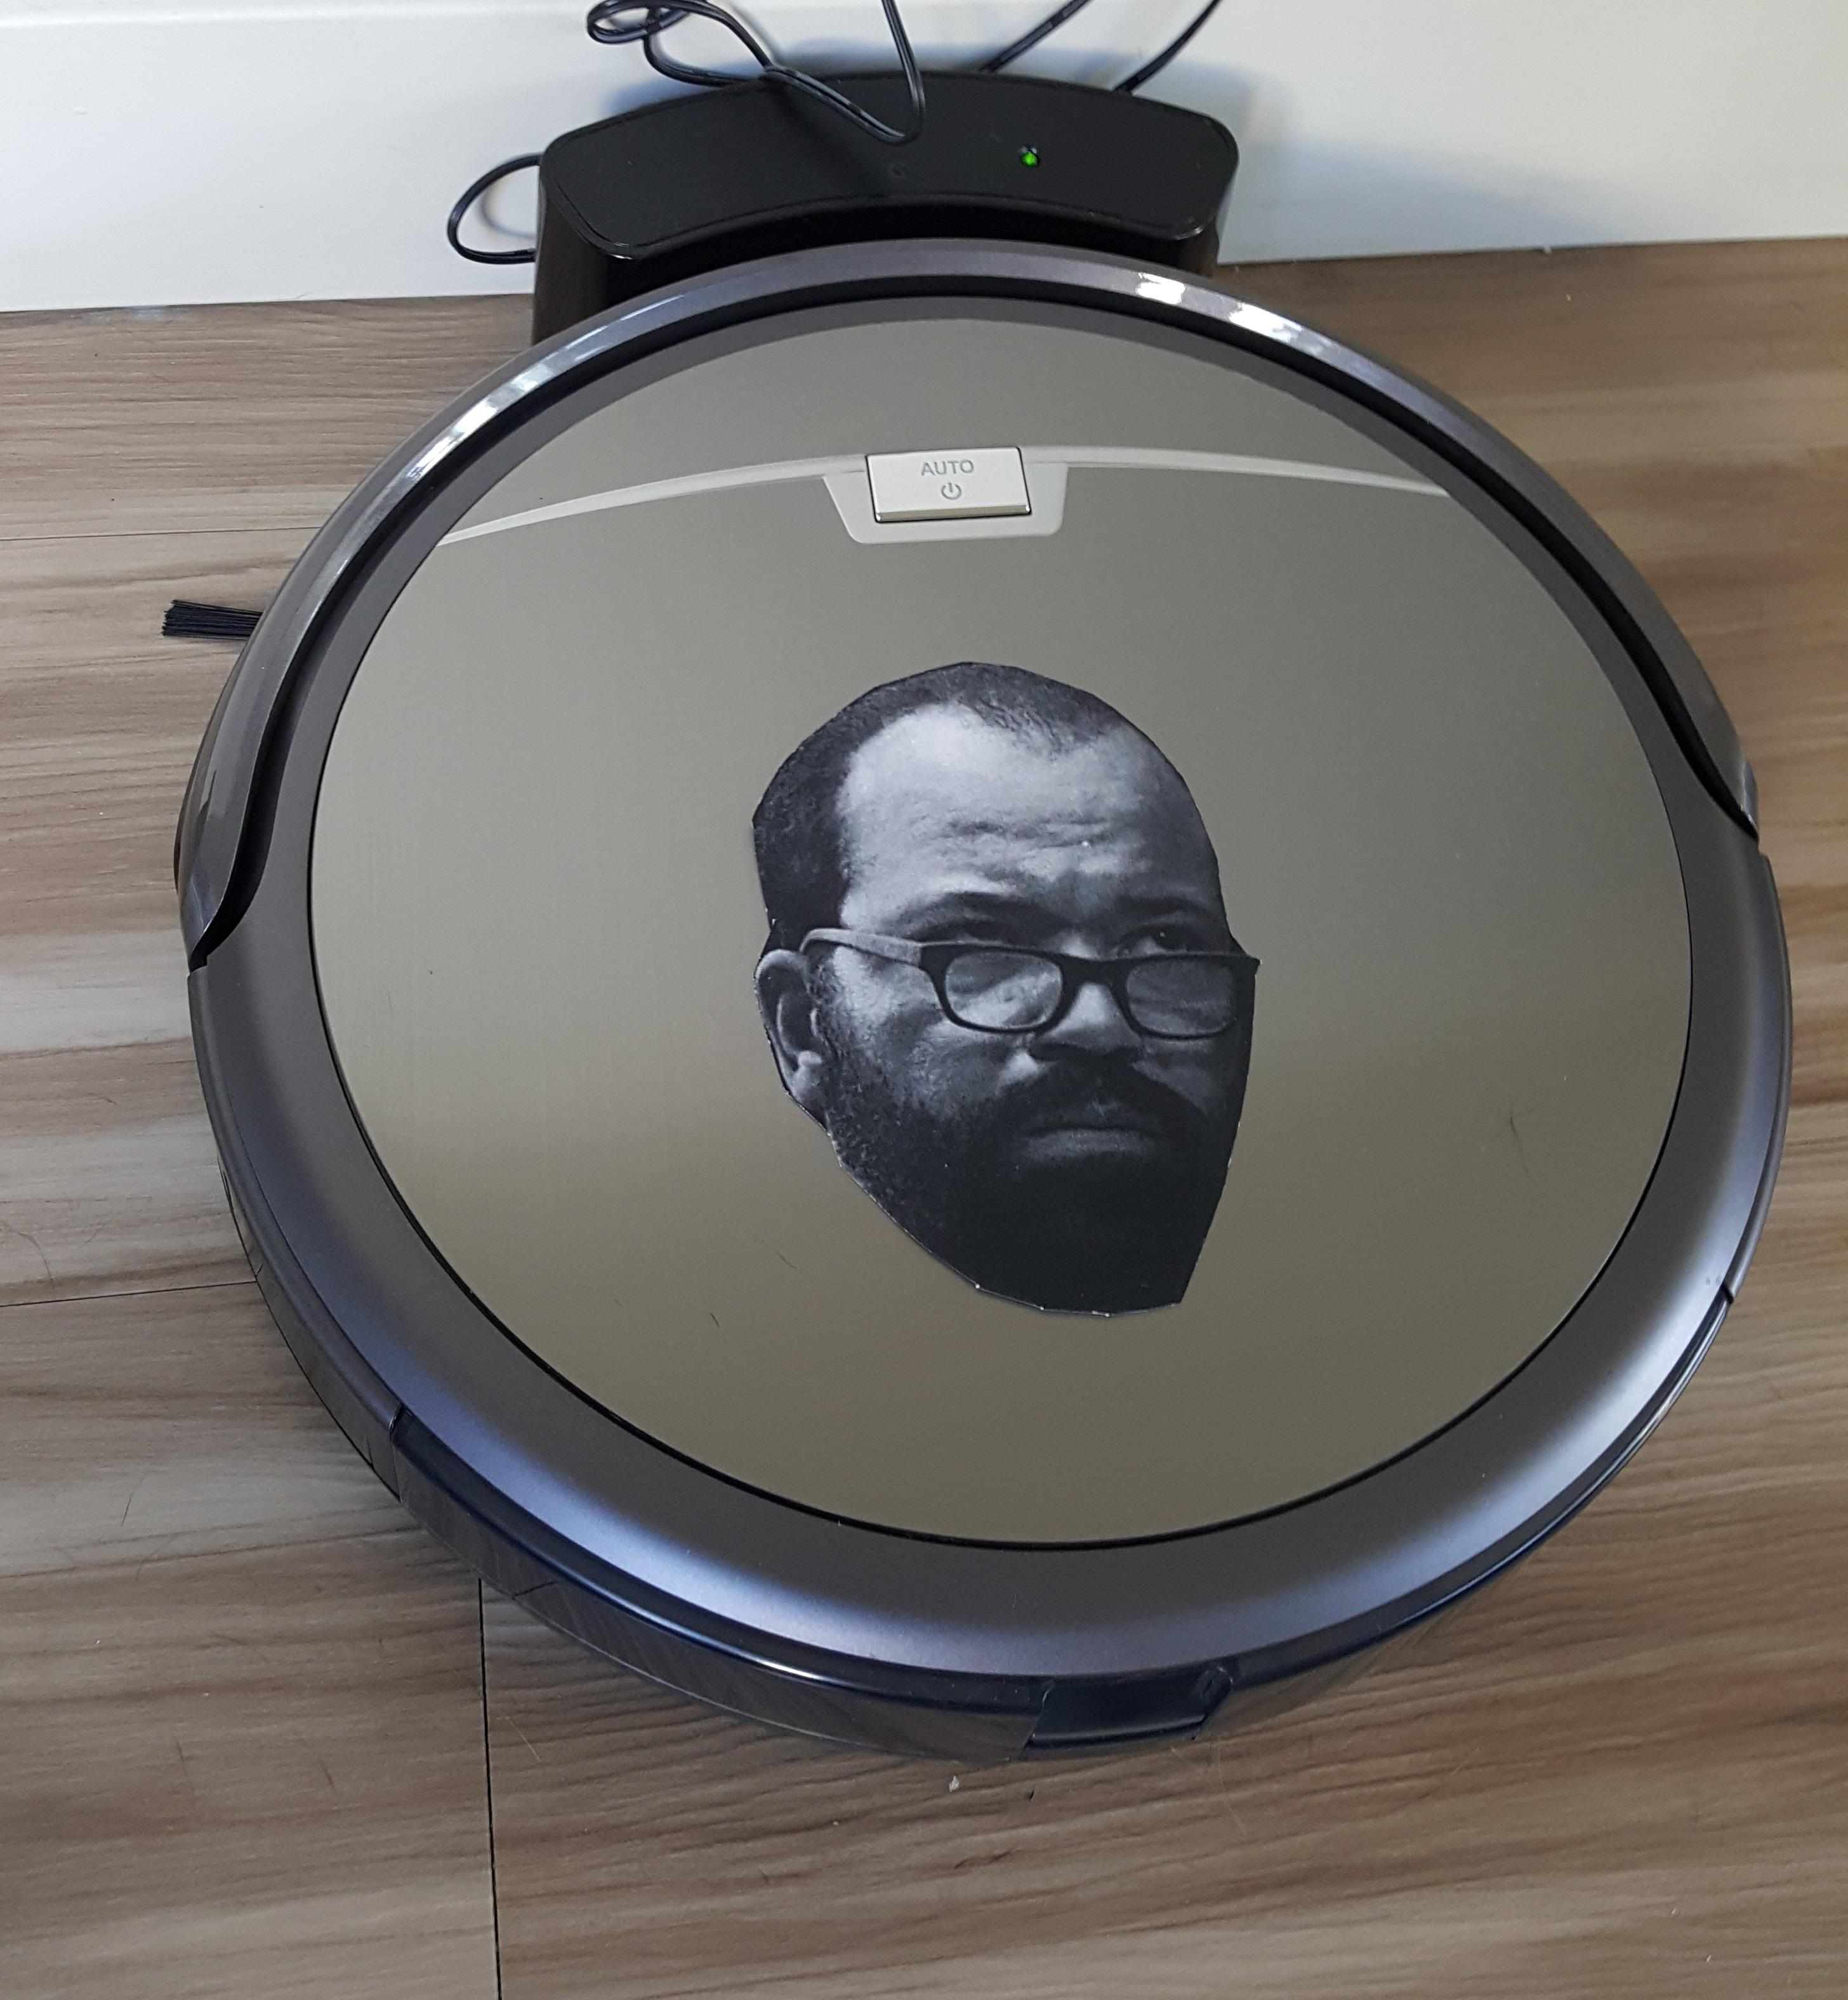 our new roomba knockoff